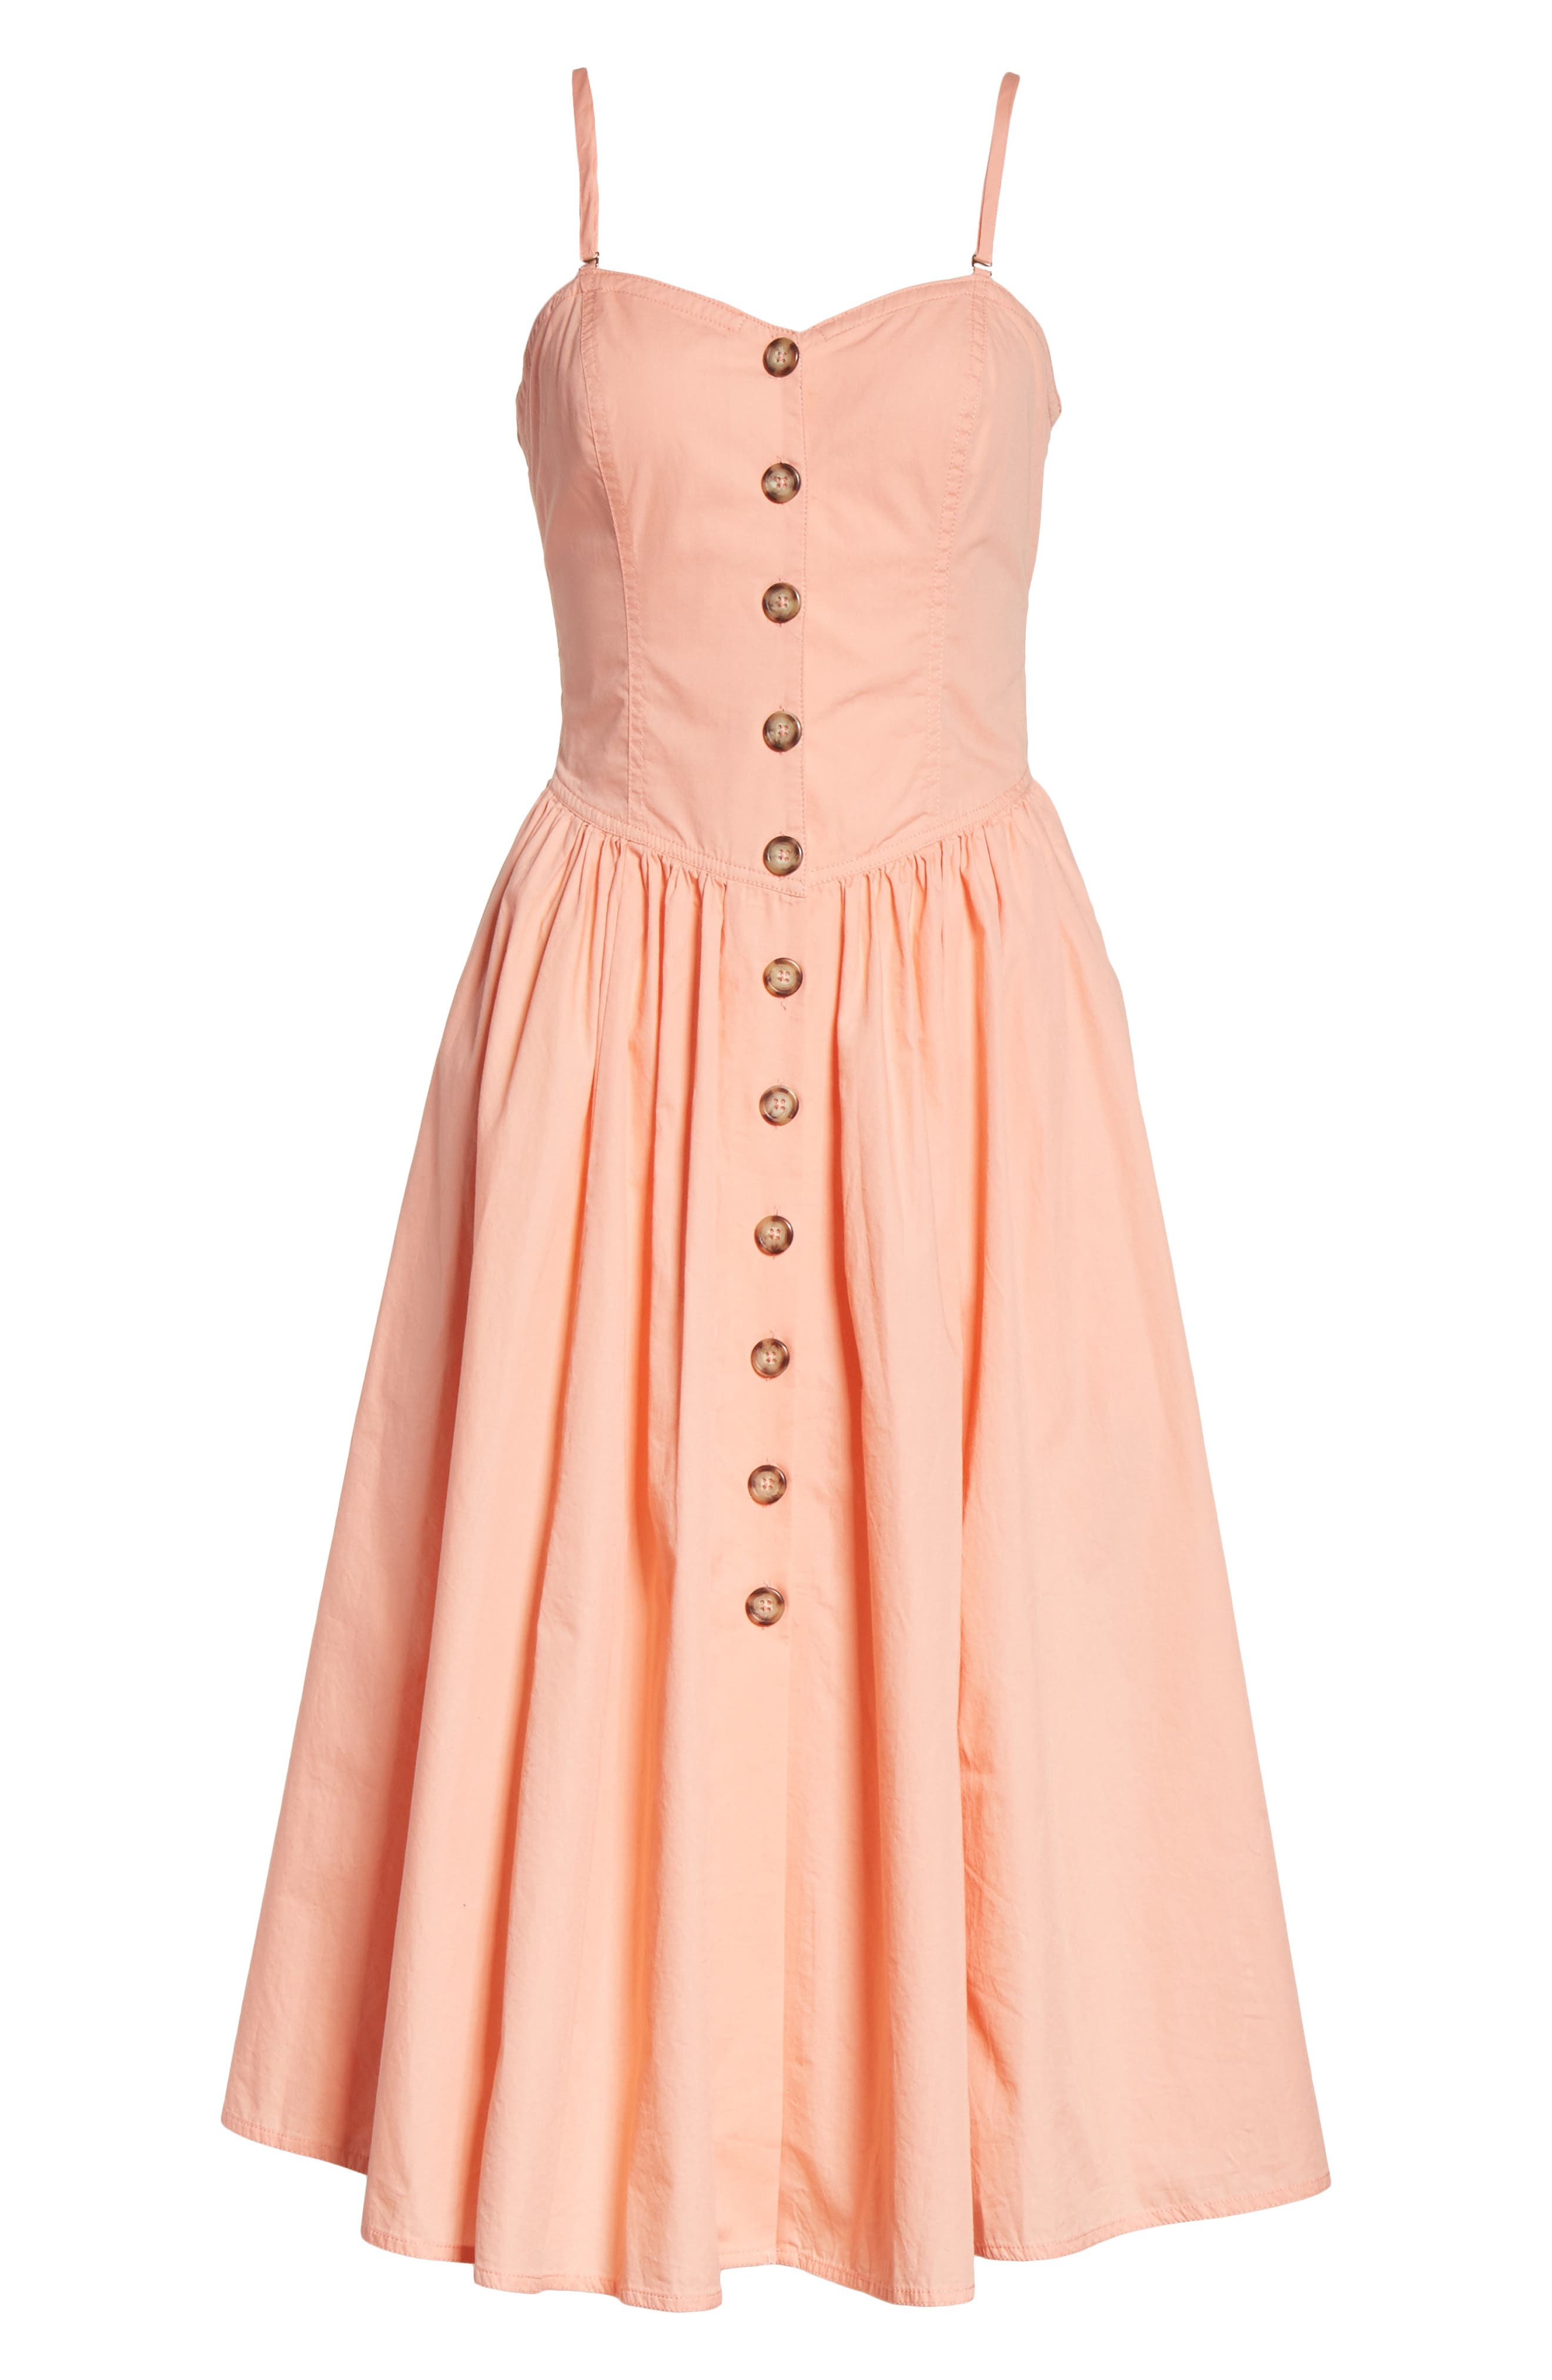 Perfect Peach Poplin Midi Dress,                             Alternate thumbnail 20, color,